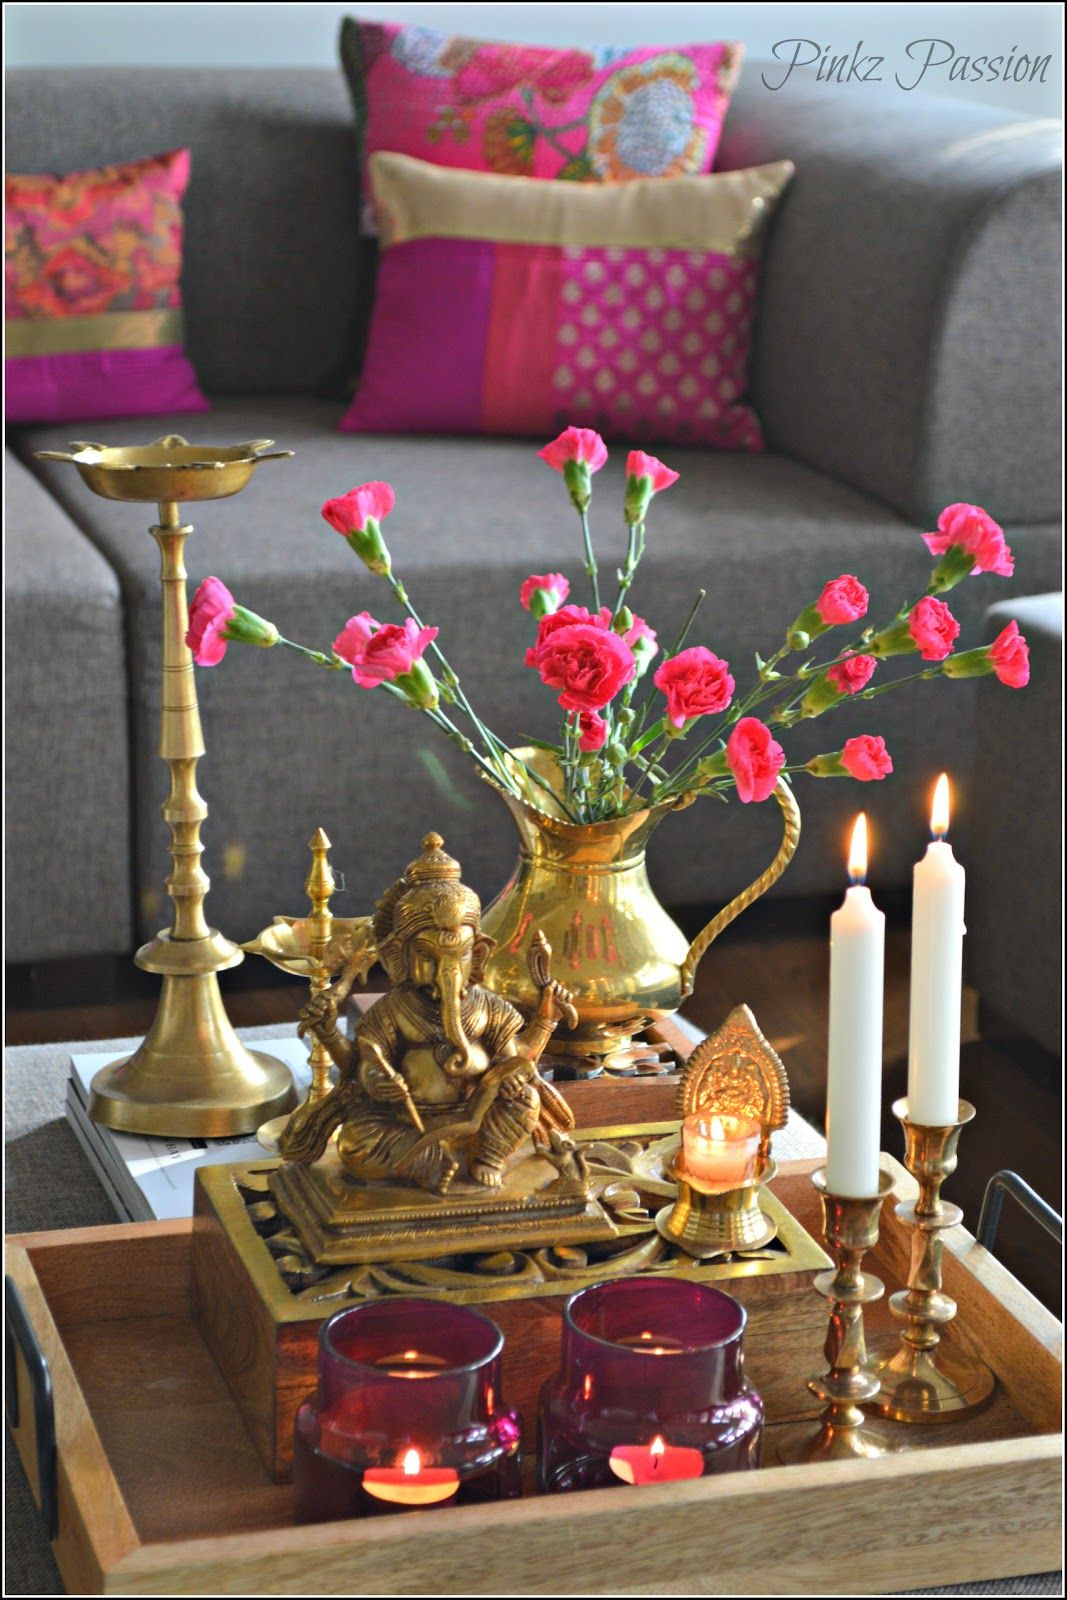 Pinkz Passion Ganesh in 2019 Indian home decor, Home